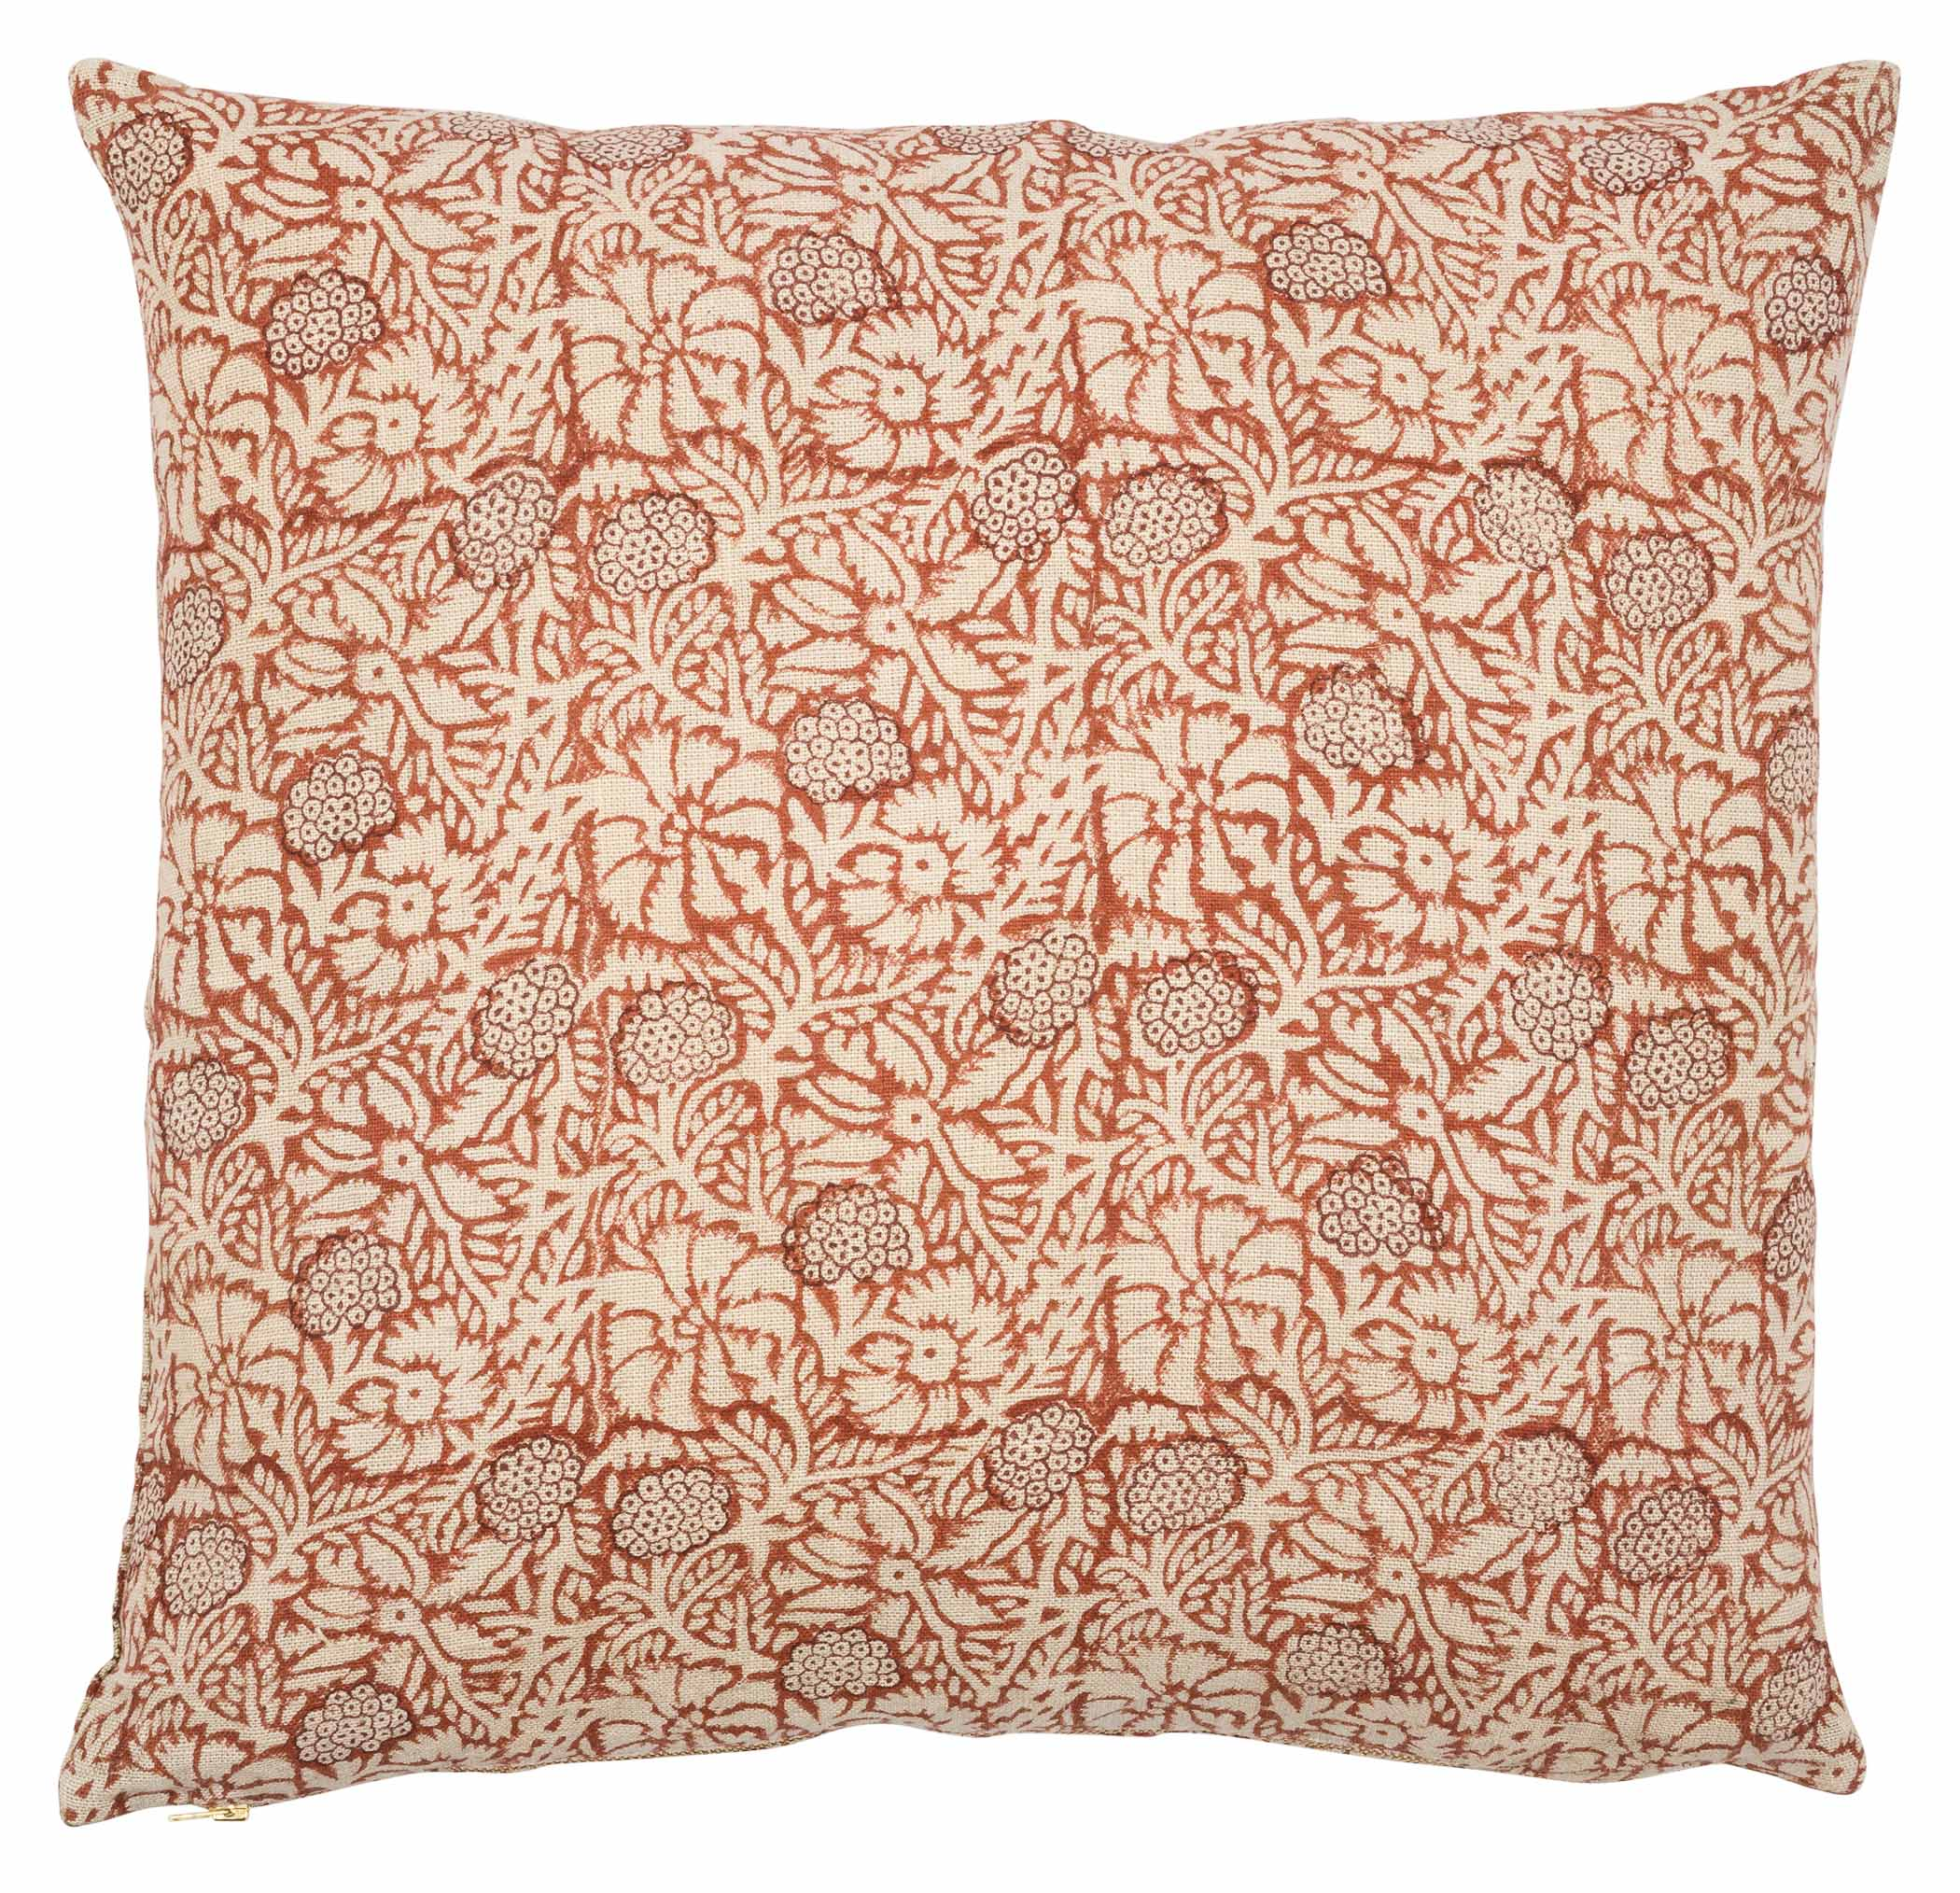 Cushion Cover - Meadow - Spicy Red